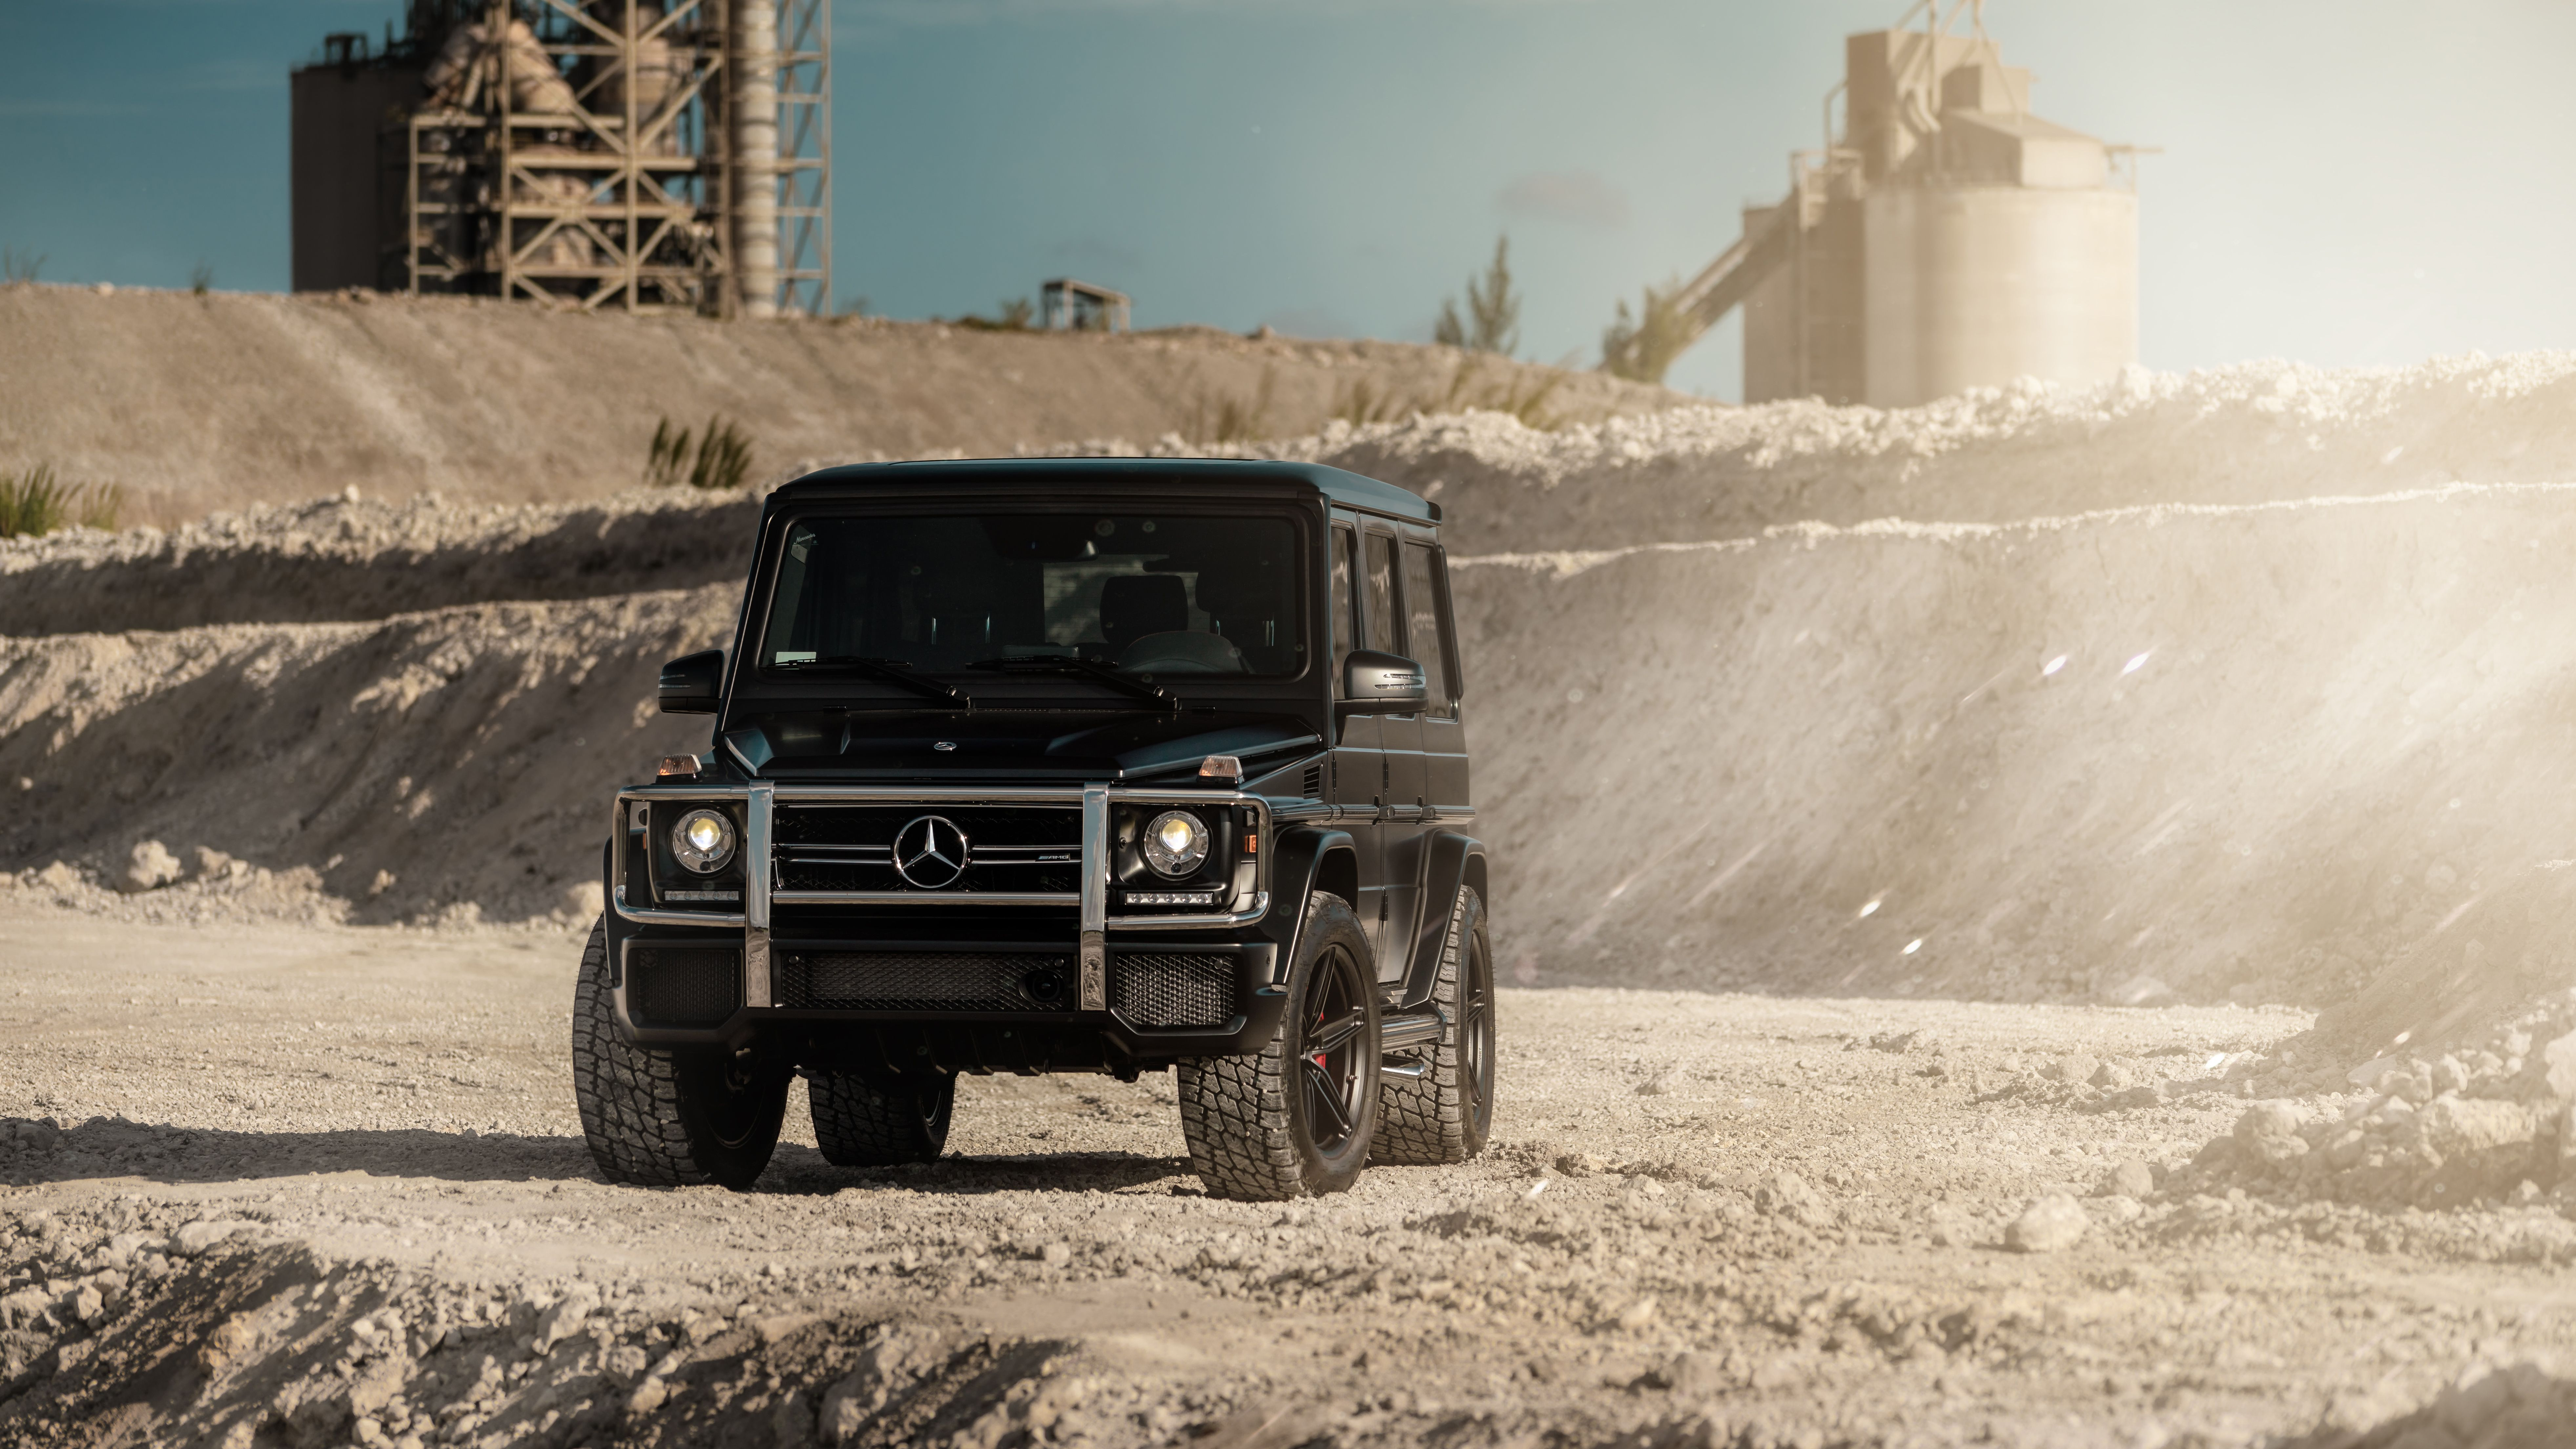 Mercedes G Wagon Wallpapers Top Free Mercedes G Wagon Backgrounds Wallpaperaccess